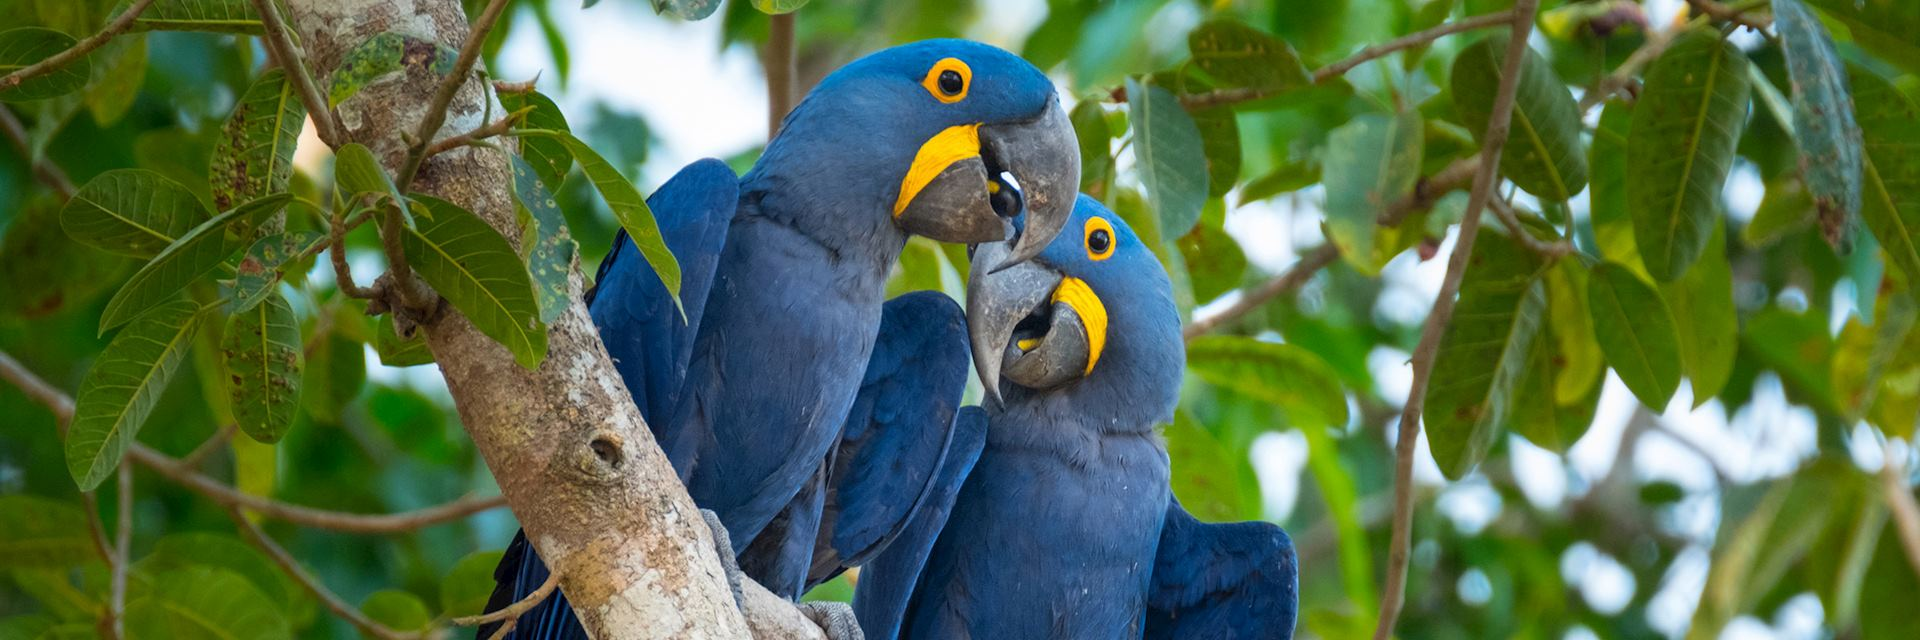 Hyacinth macaws, the Pantanal, Brazil